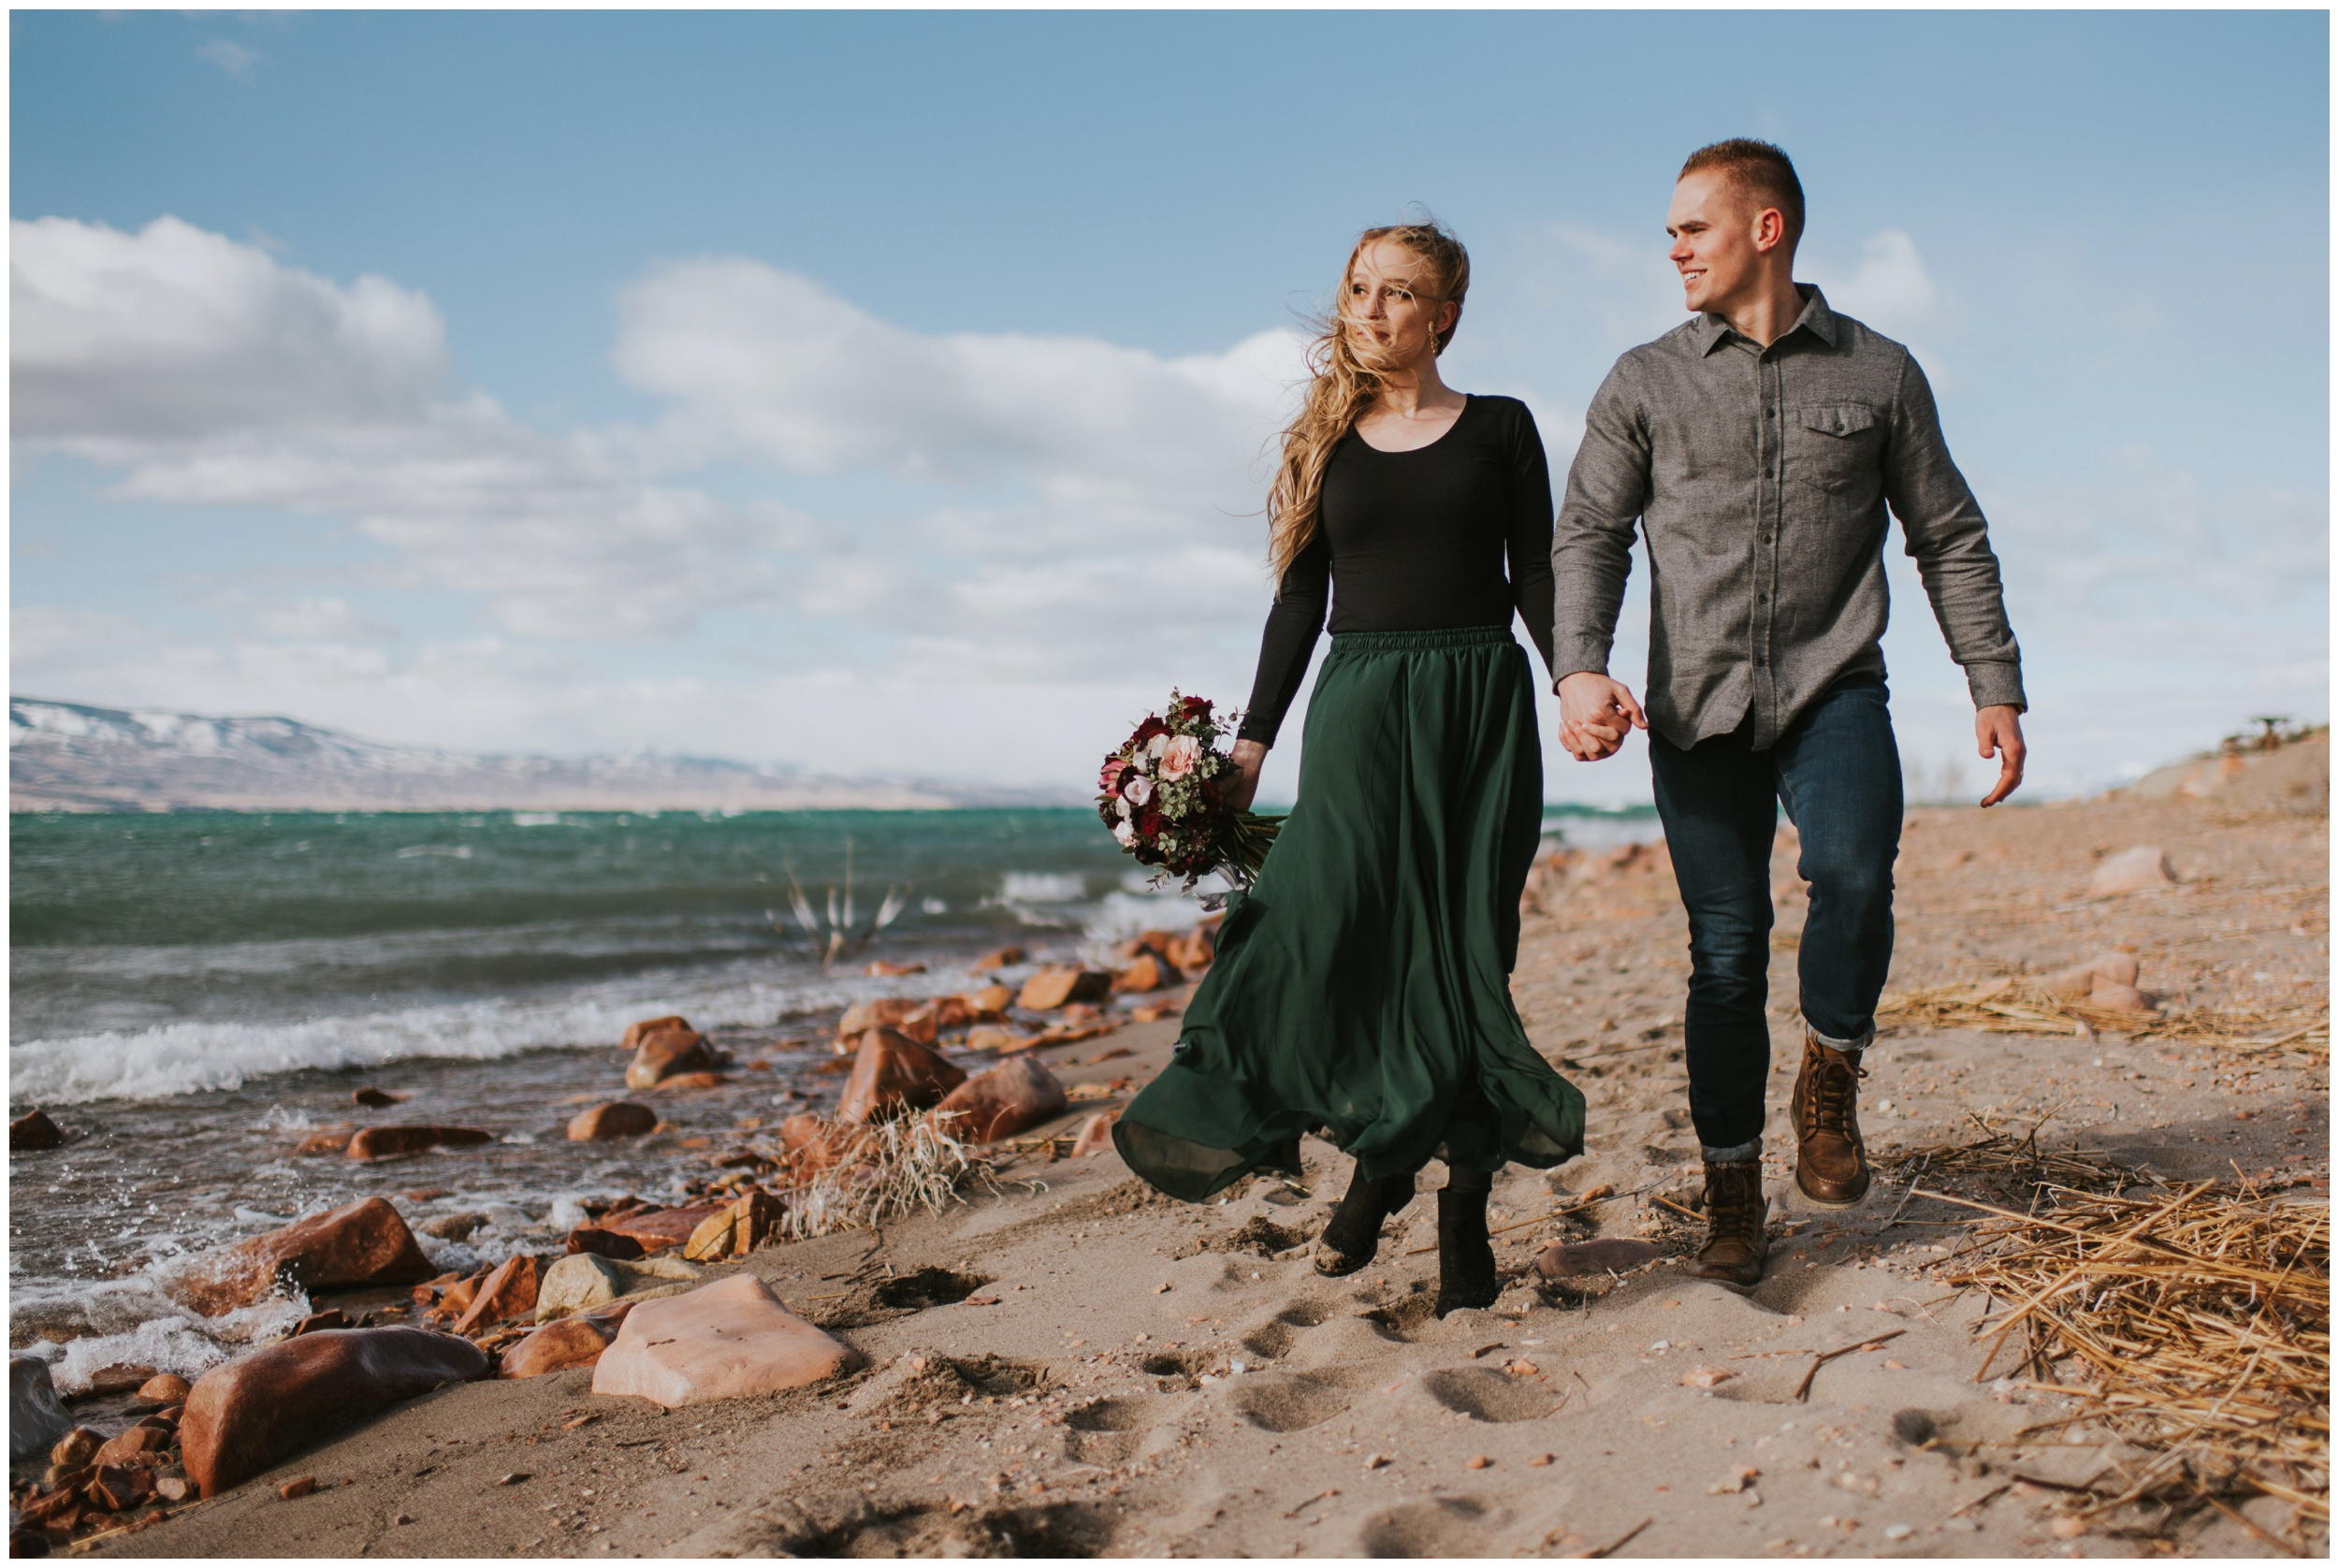 Adventurous couple eloping at the beach  | Wedding Photographer Bear Lake Utah www.riversandroadsphotography.com